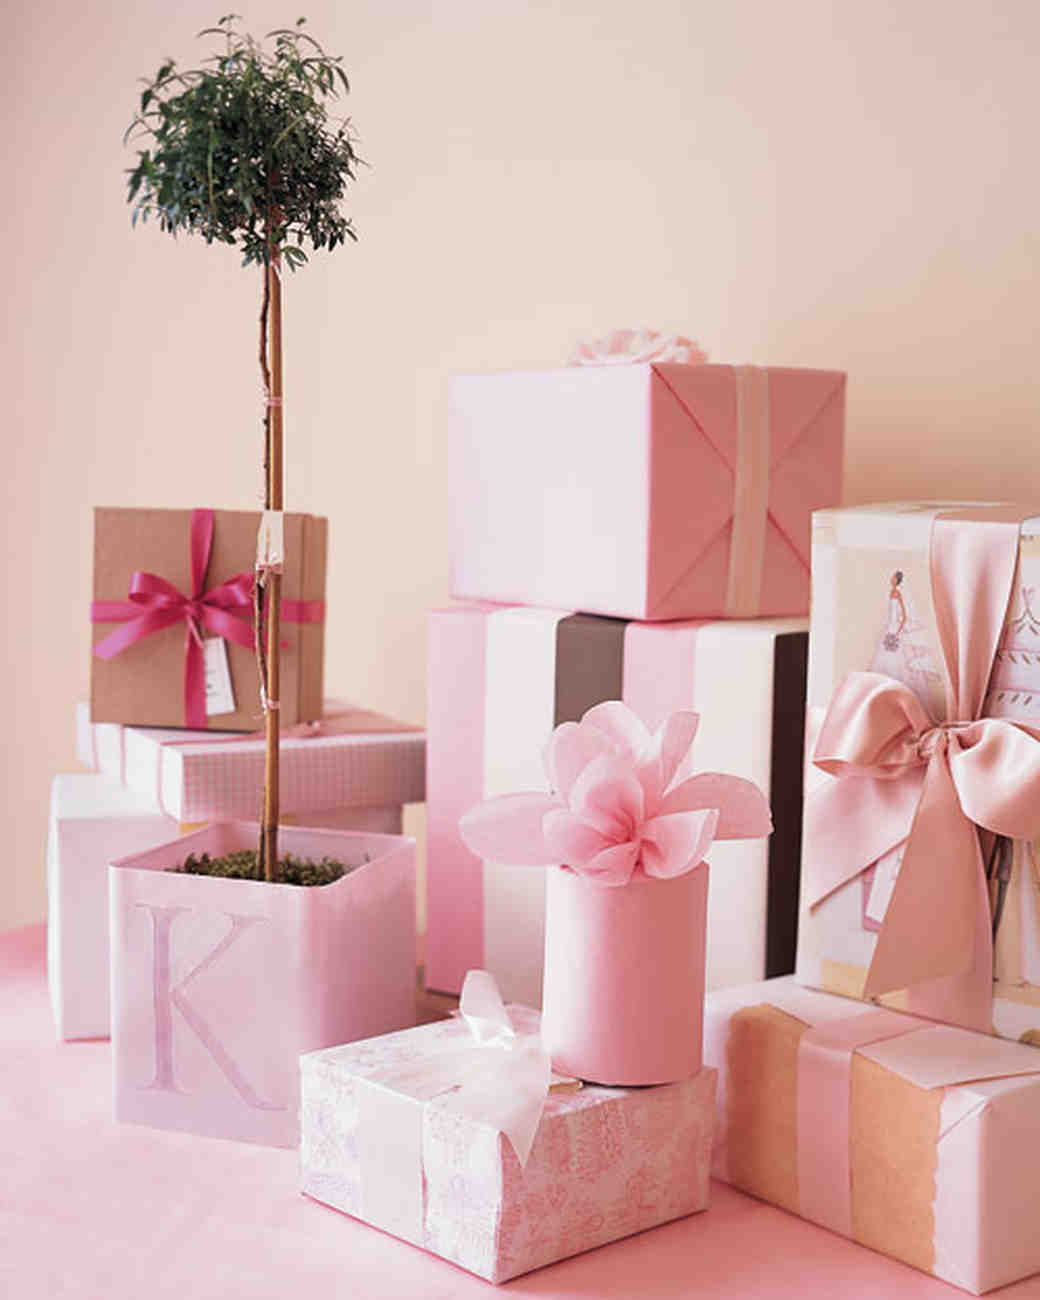 msw_spring03_pink_giftwrap.jpg